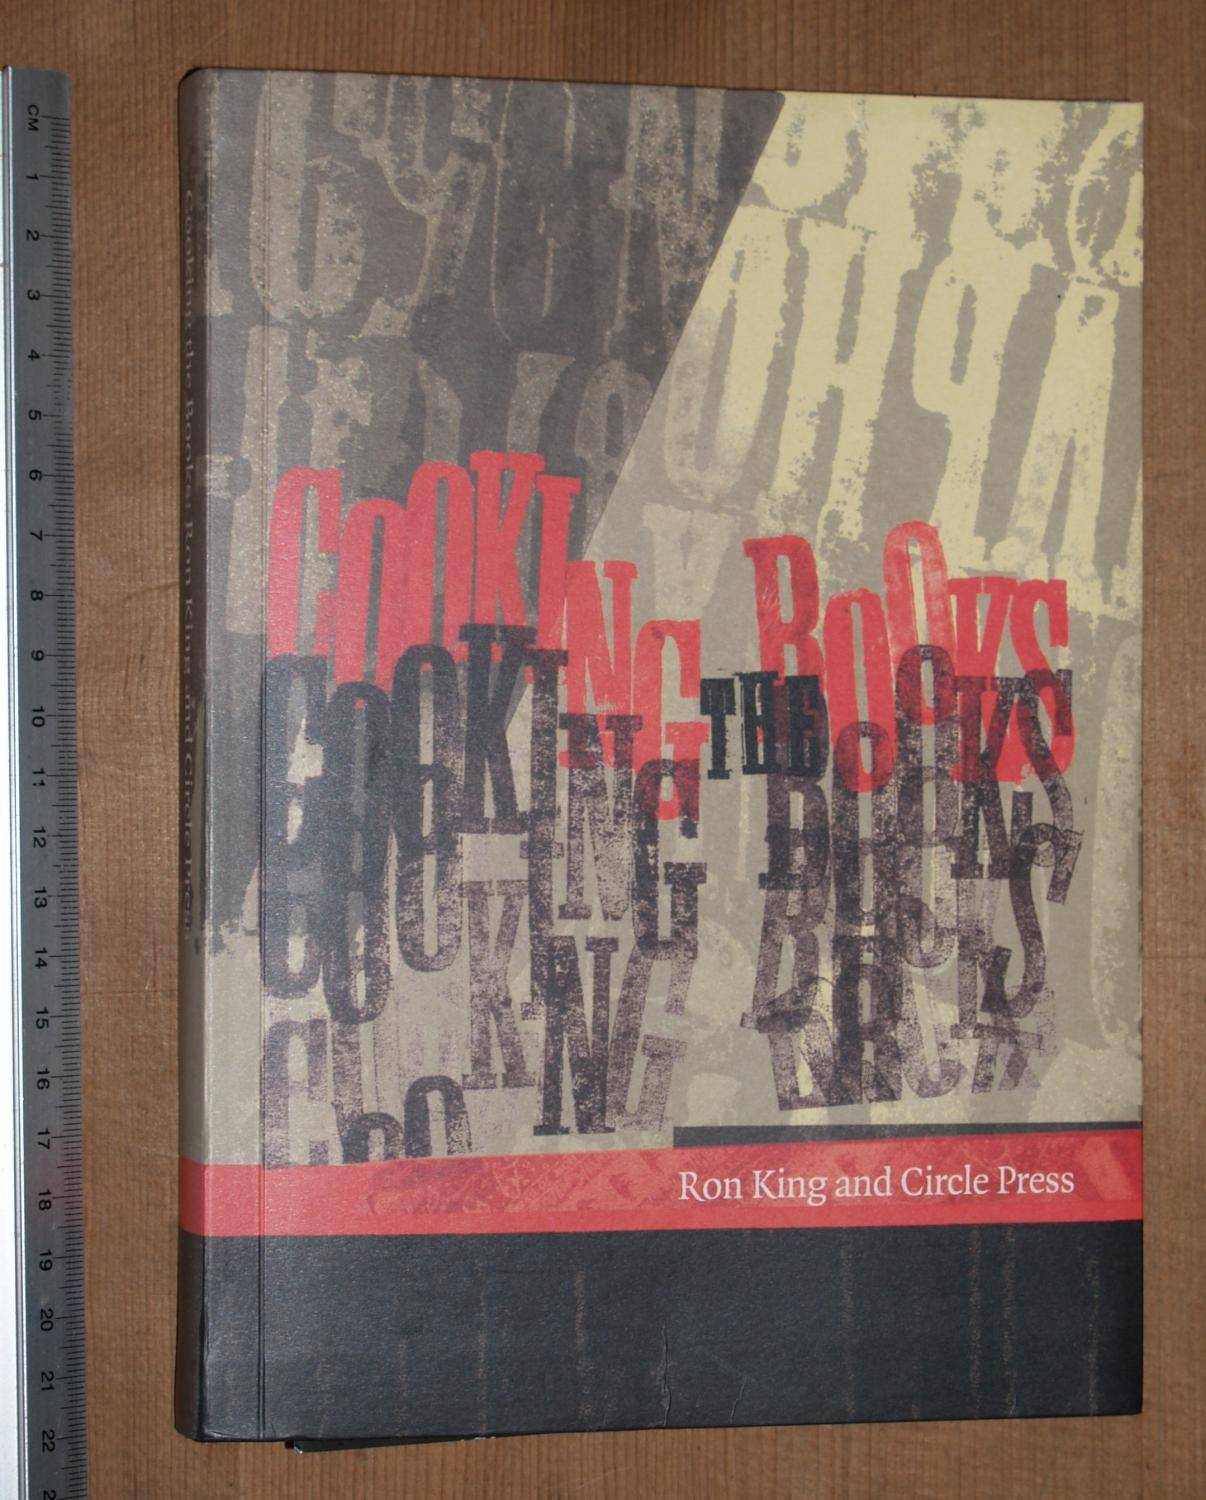 Cooking the books - Ron King and Circle Press. Essay by Andrew Lambirth, descriptions and commentary by Ron King [Very Good] [Softcover]